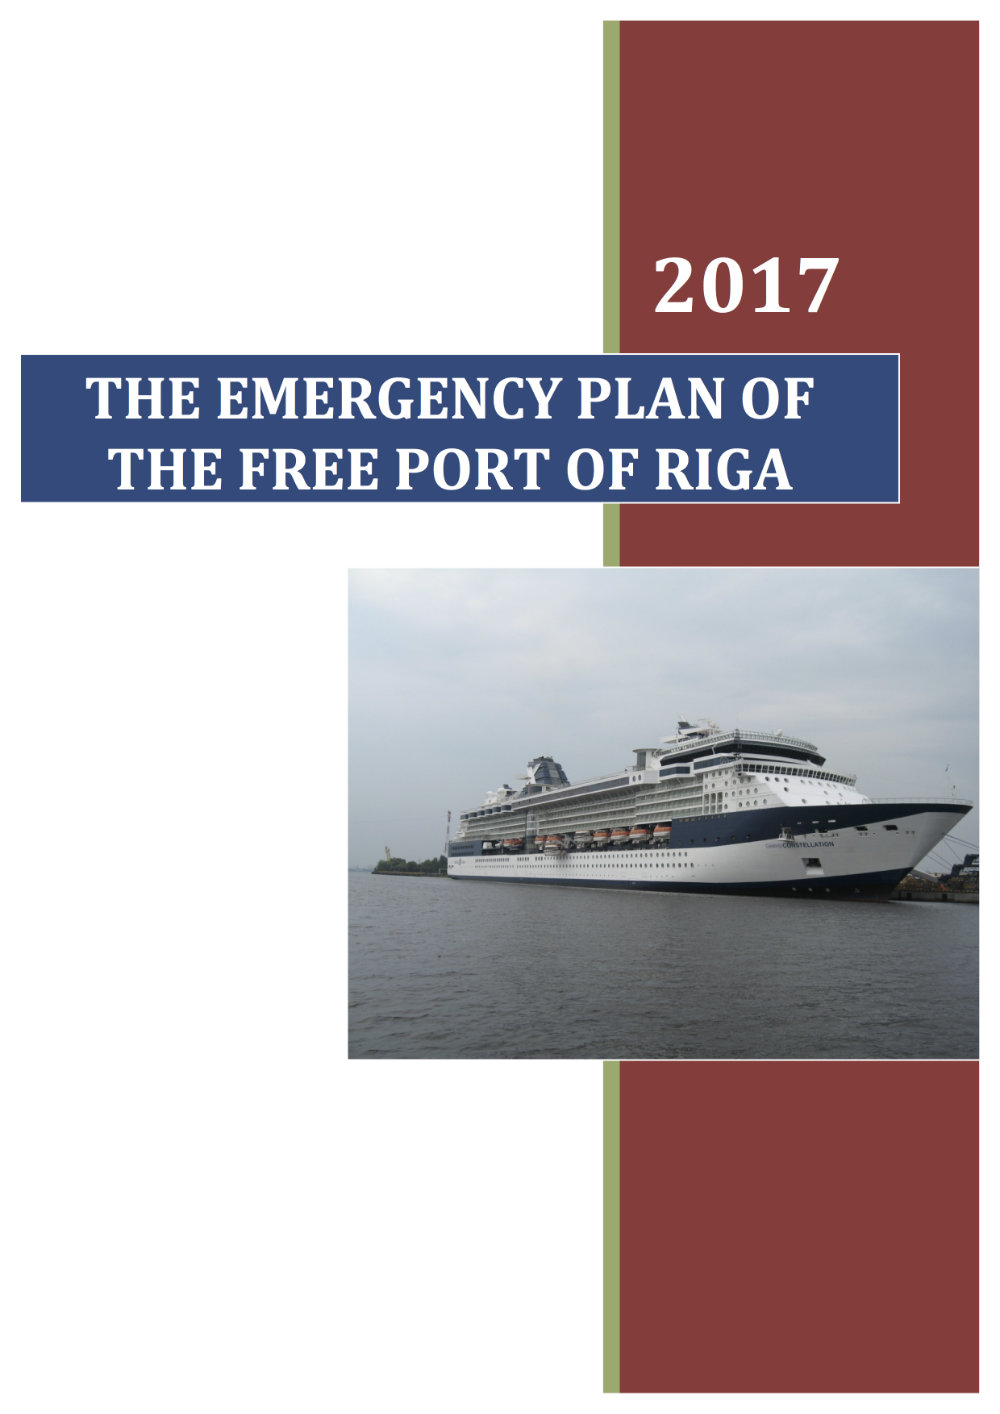 The Emergency plan document front page